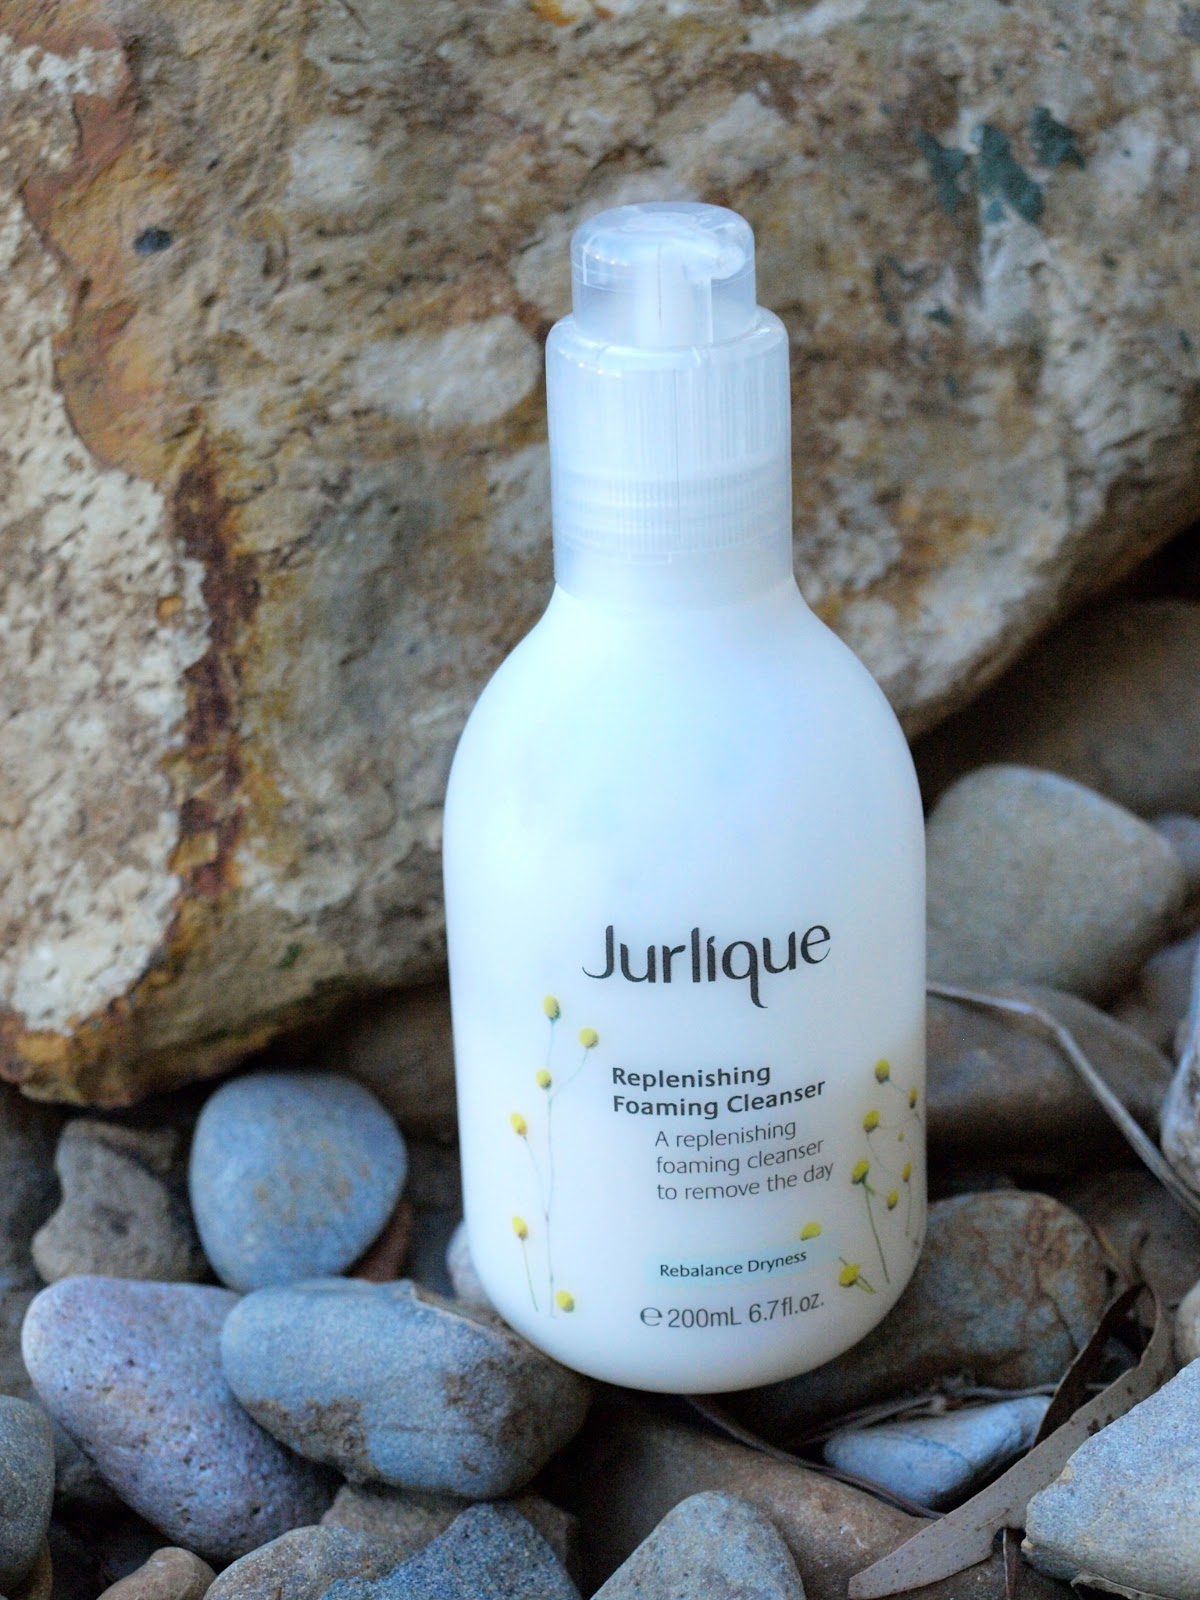 Jurlique - Replenishing Foaming Cleanser -200ml/6.7oz (6 Pack) NYX Stripped Off Cleansing Balm